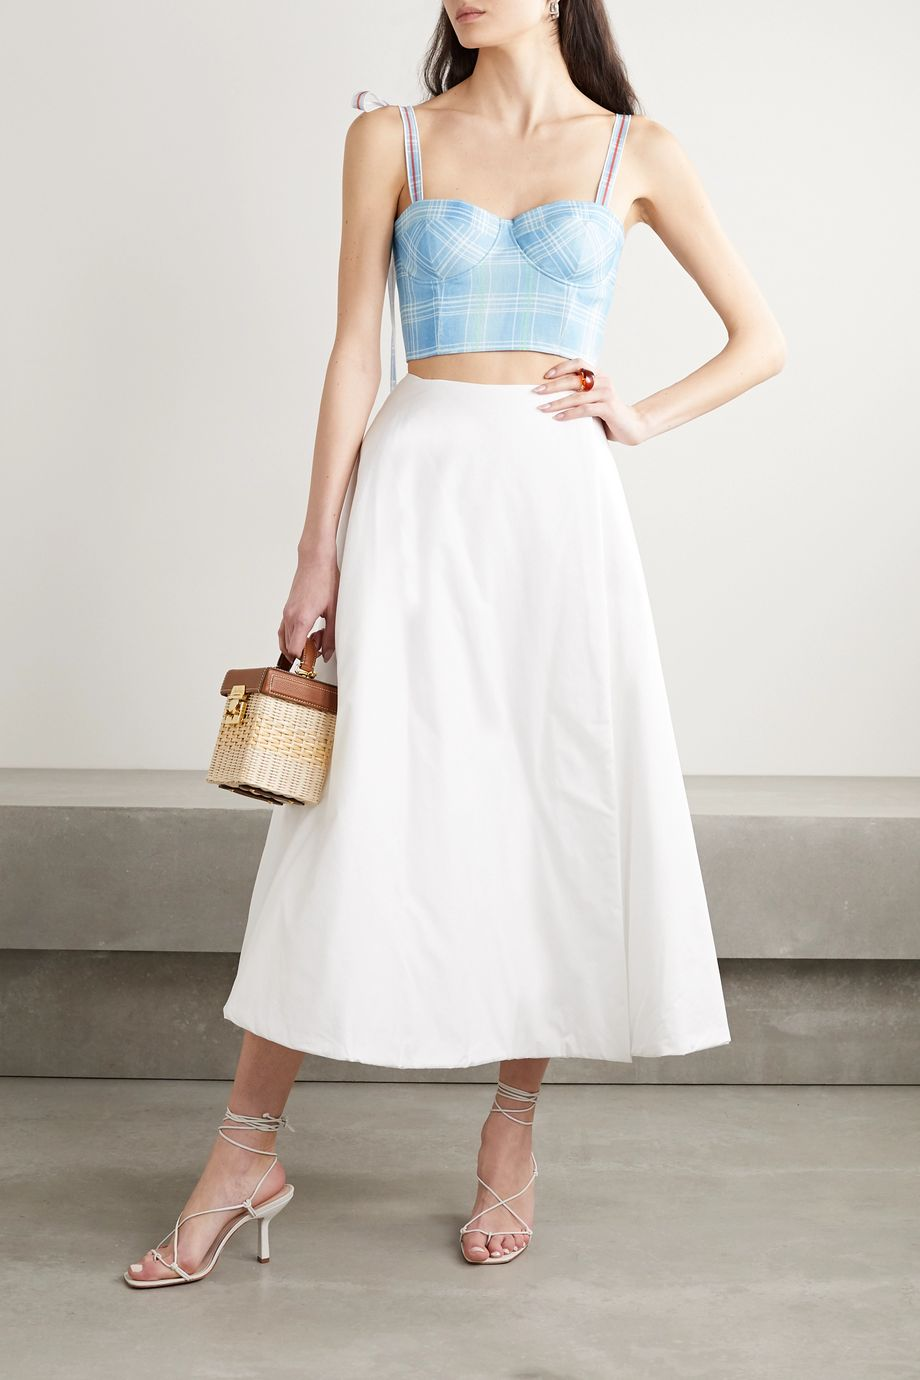 Rosie Assoulin Bustino cropped checked linen top